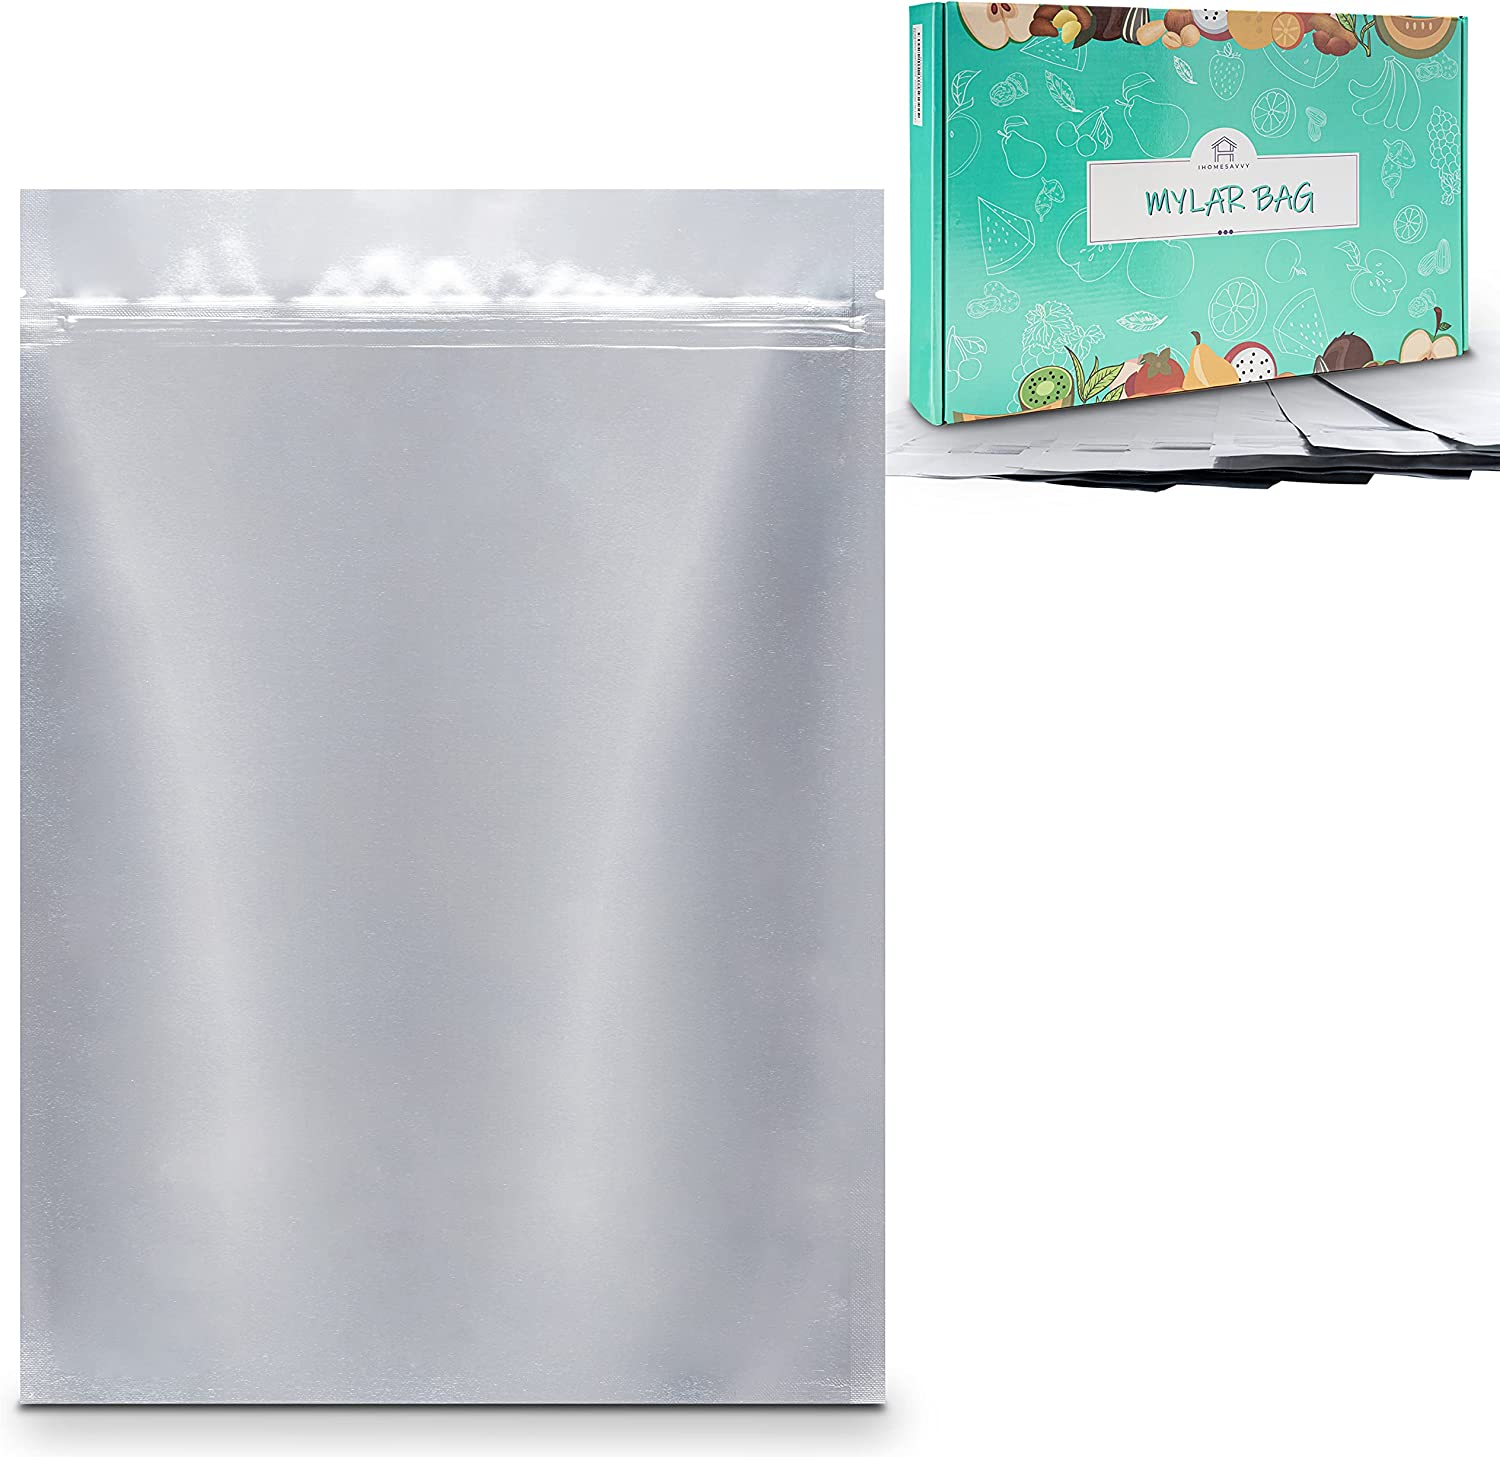 IHOMESAVVY 100 Translated Fixed price for sale Pack Mylar Bag – Bags Food For Flat Storage